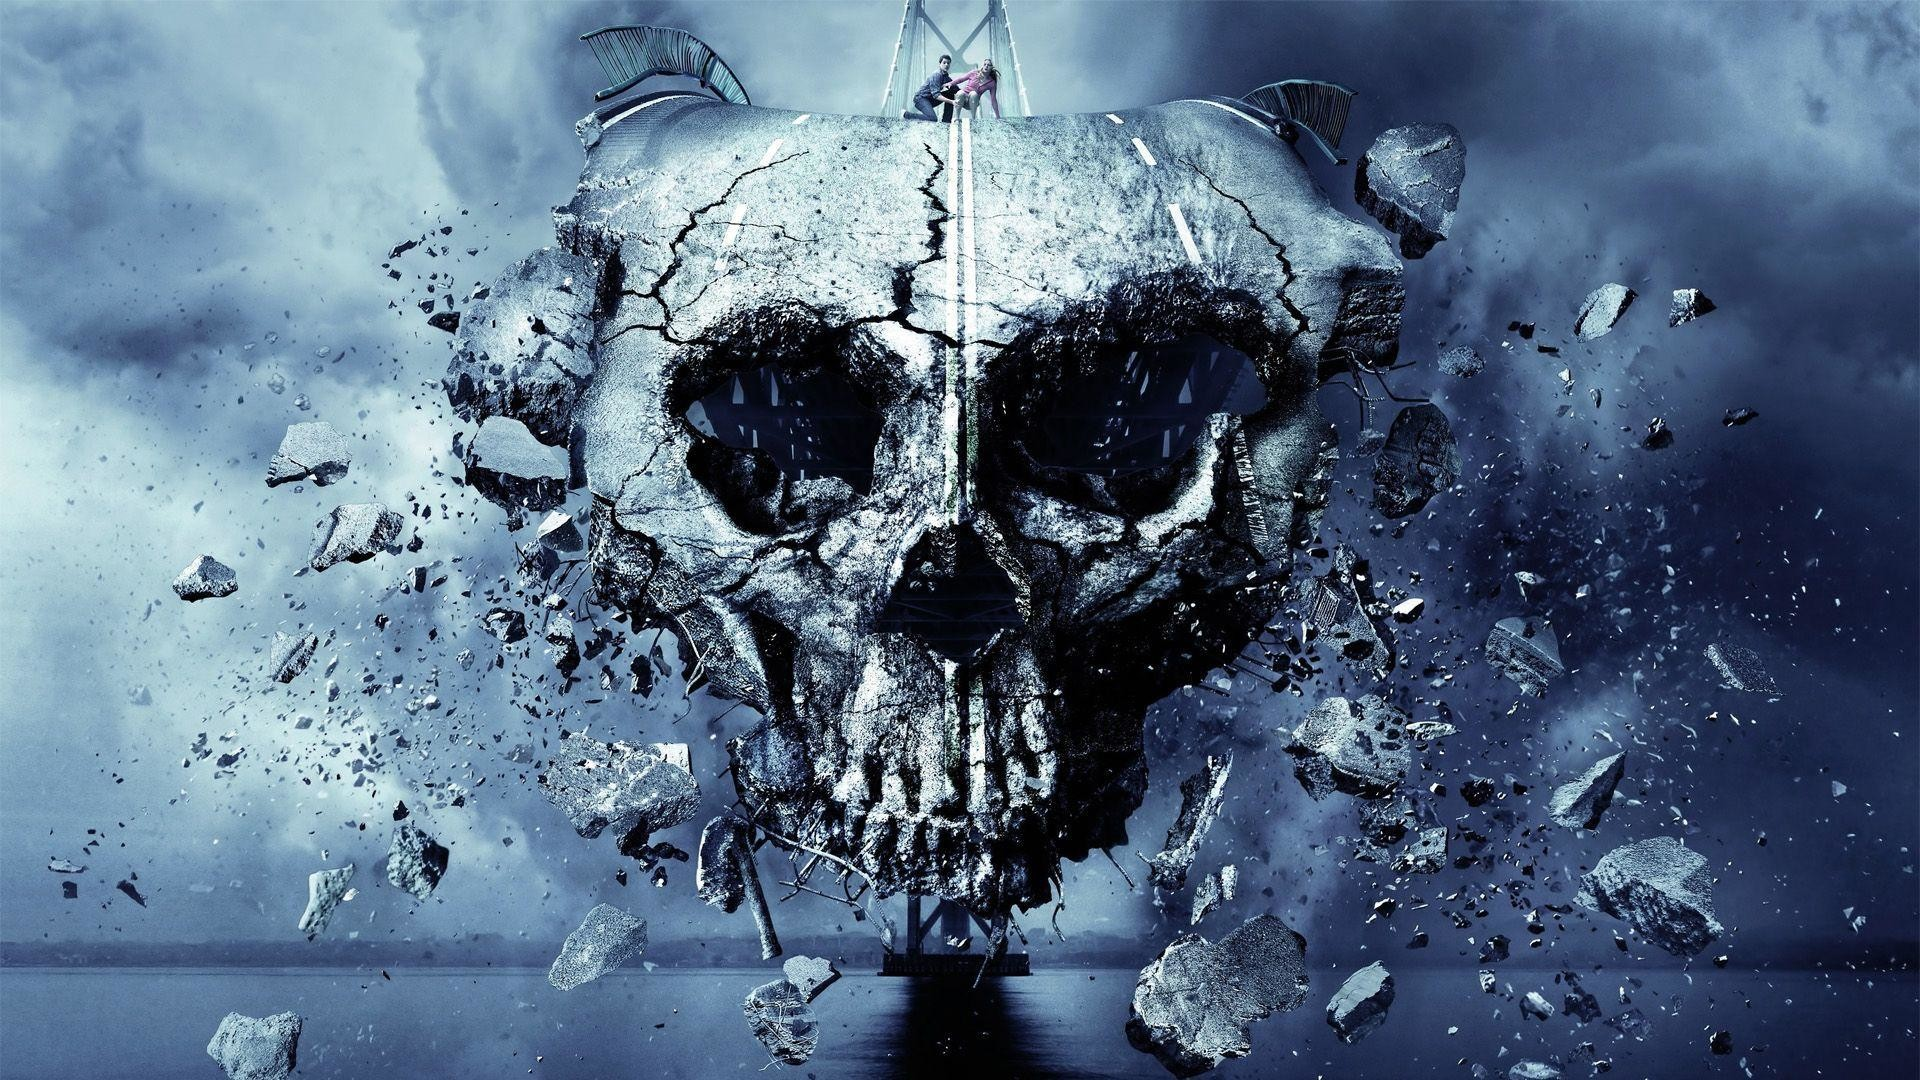 1920x1080 FINAL DESTINATION 5 dark skull skulls horror wallpaper | 1920x1080 .